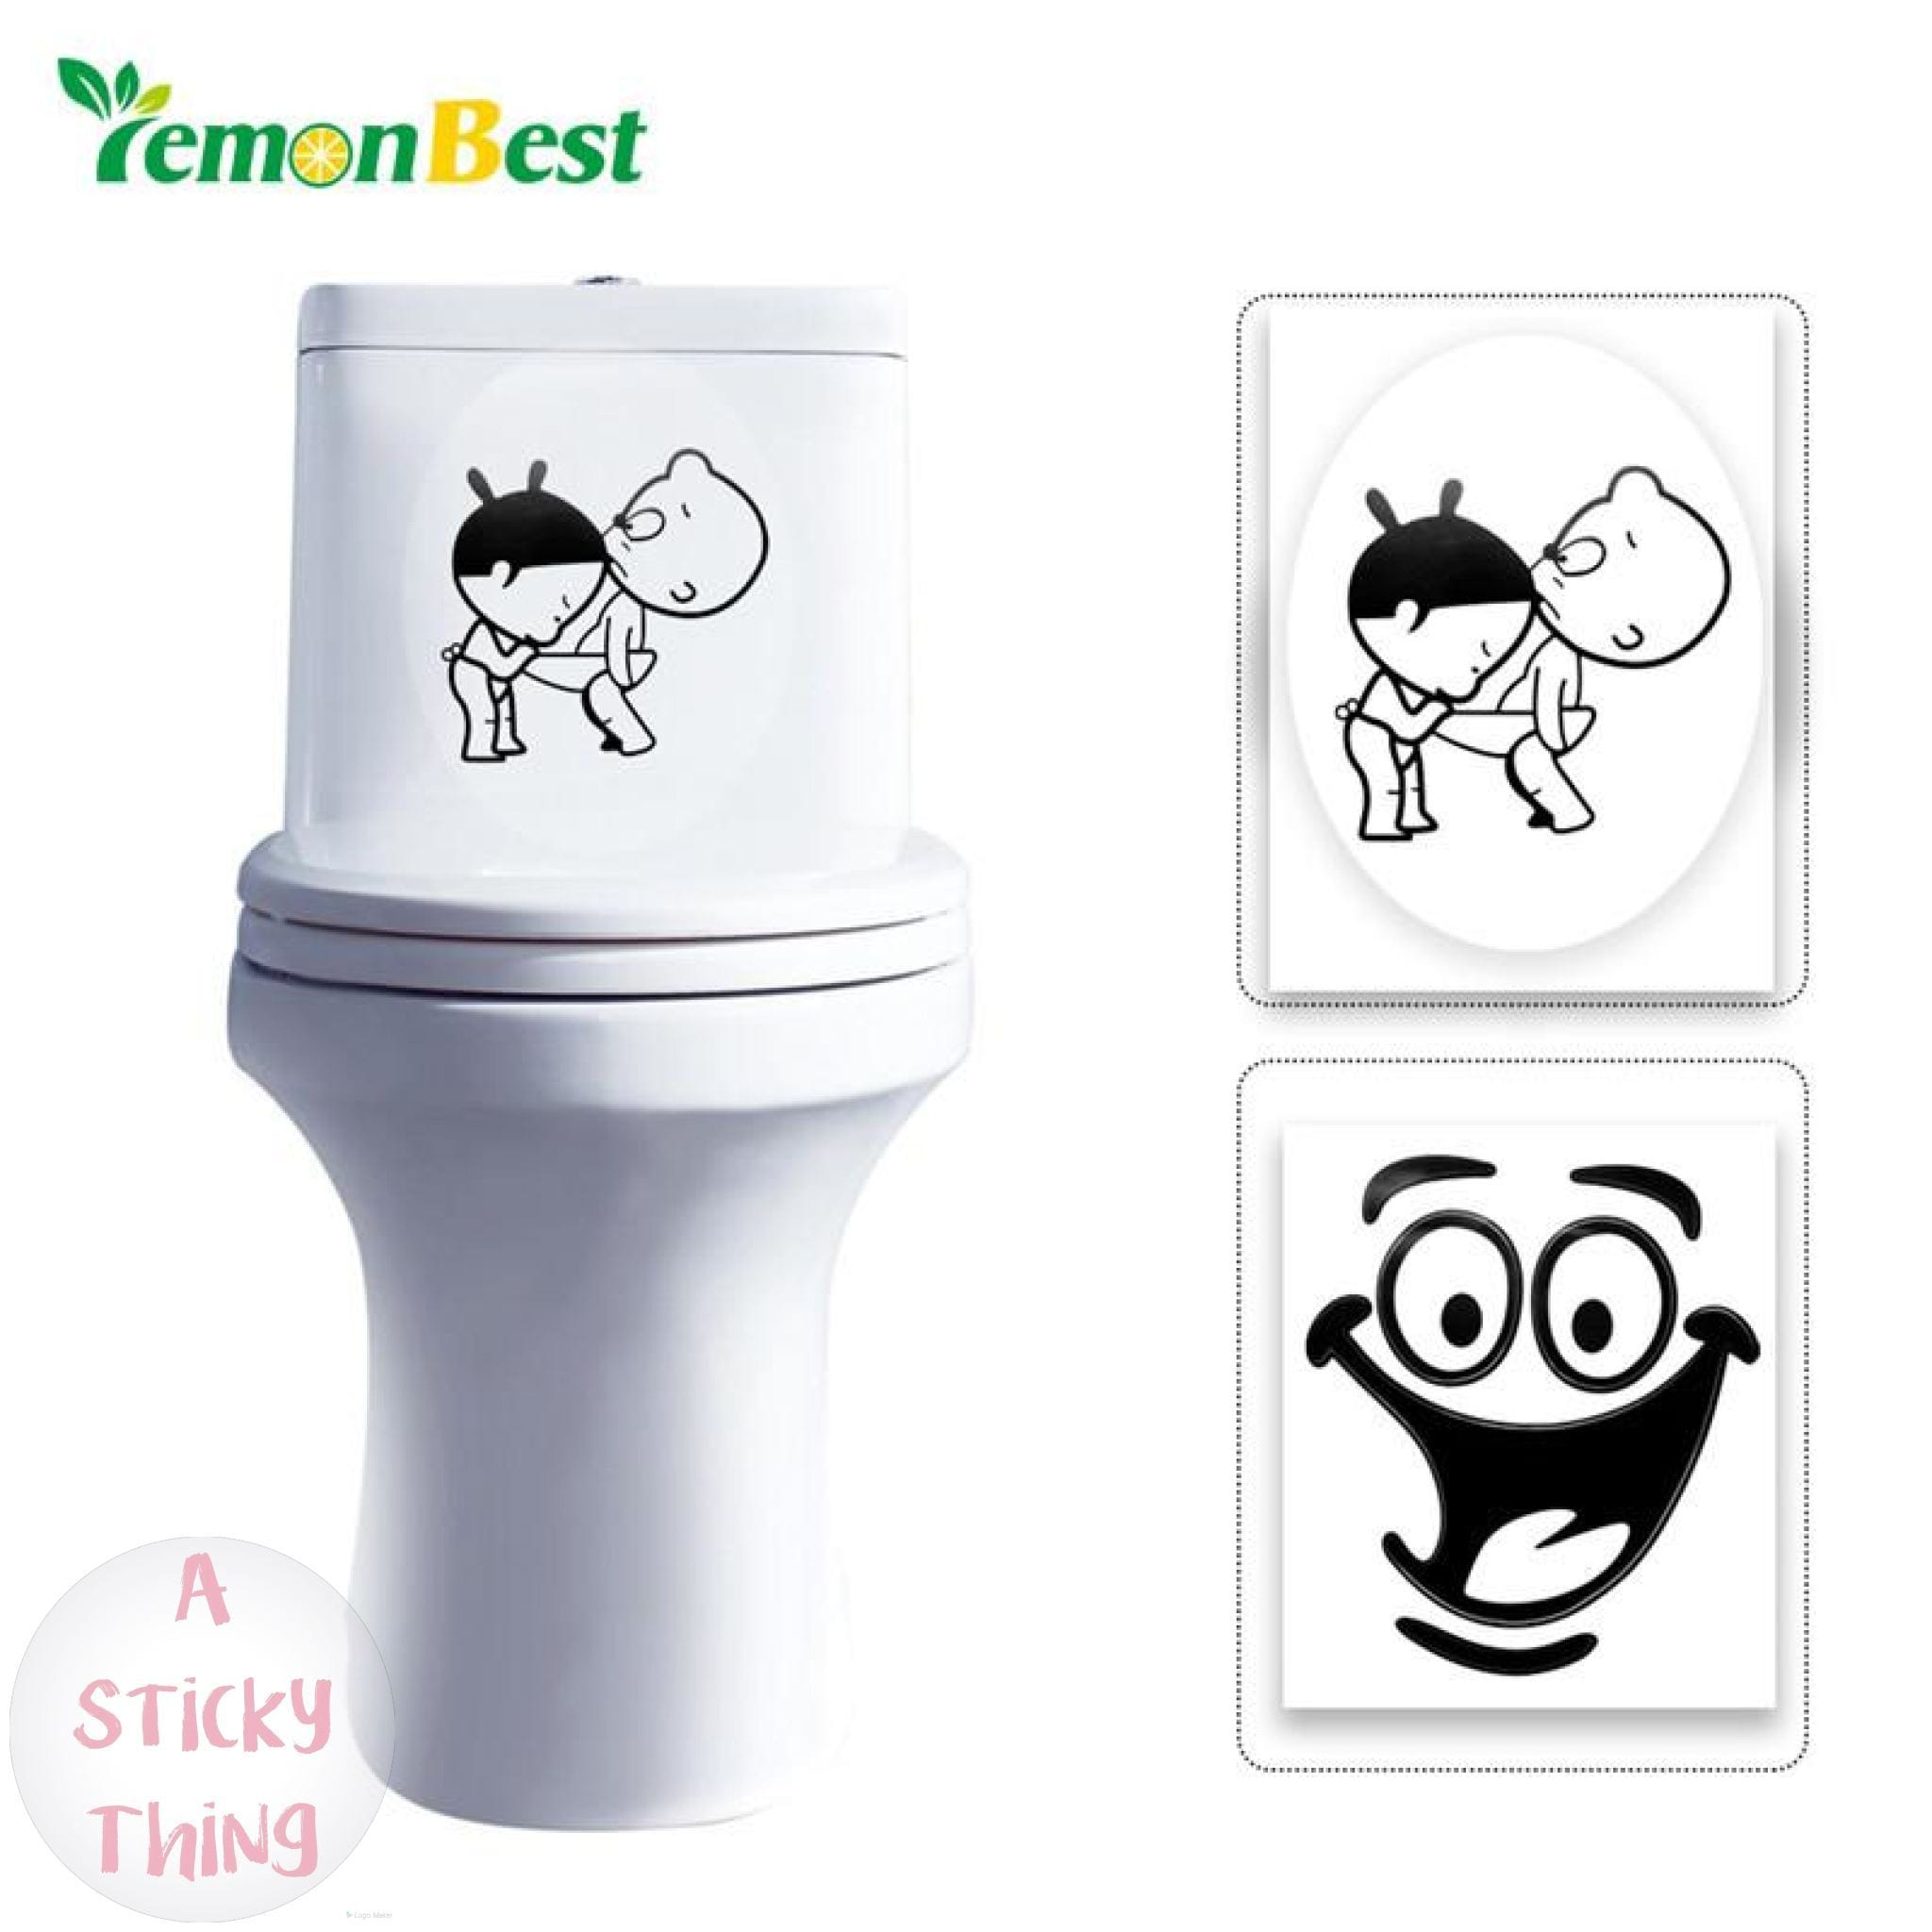 Bathroom Stickers Toilet Waterproof Decor A Sticky Thing